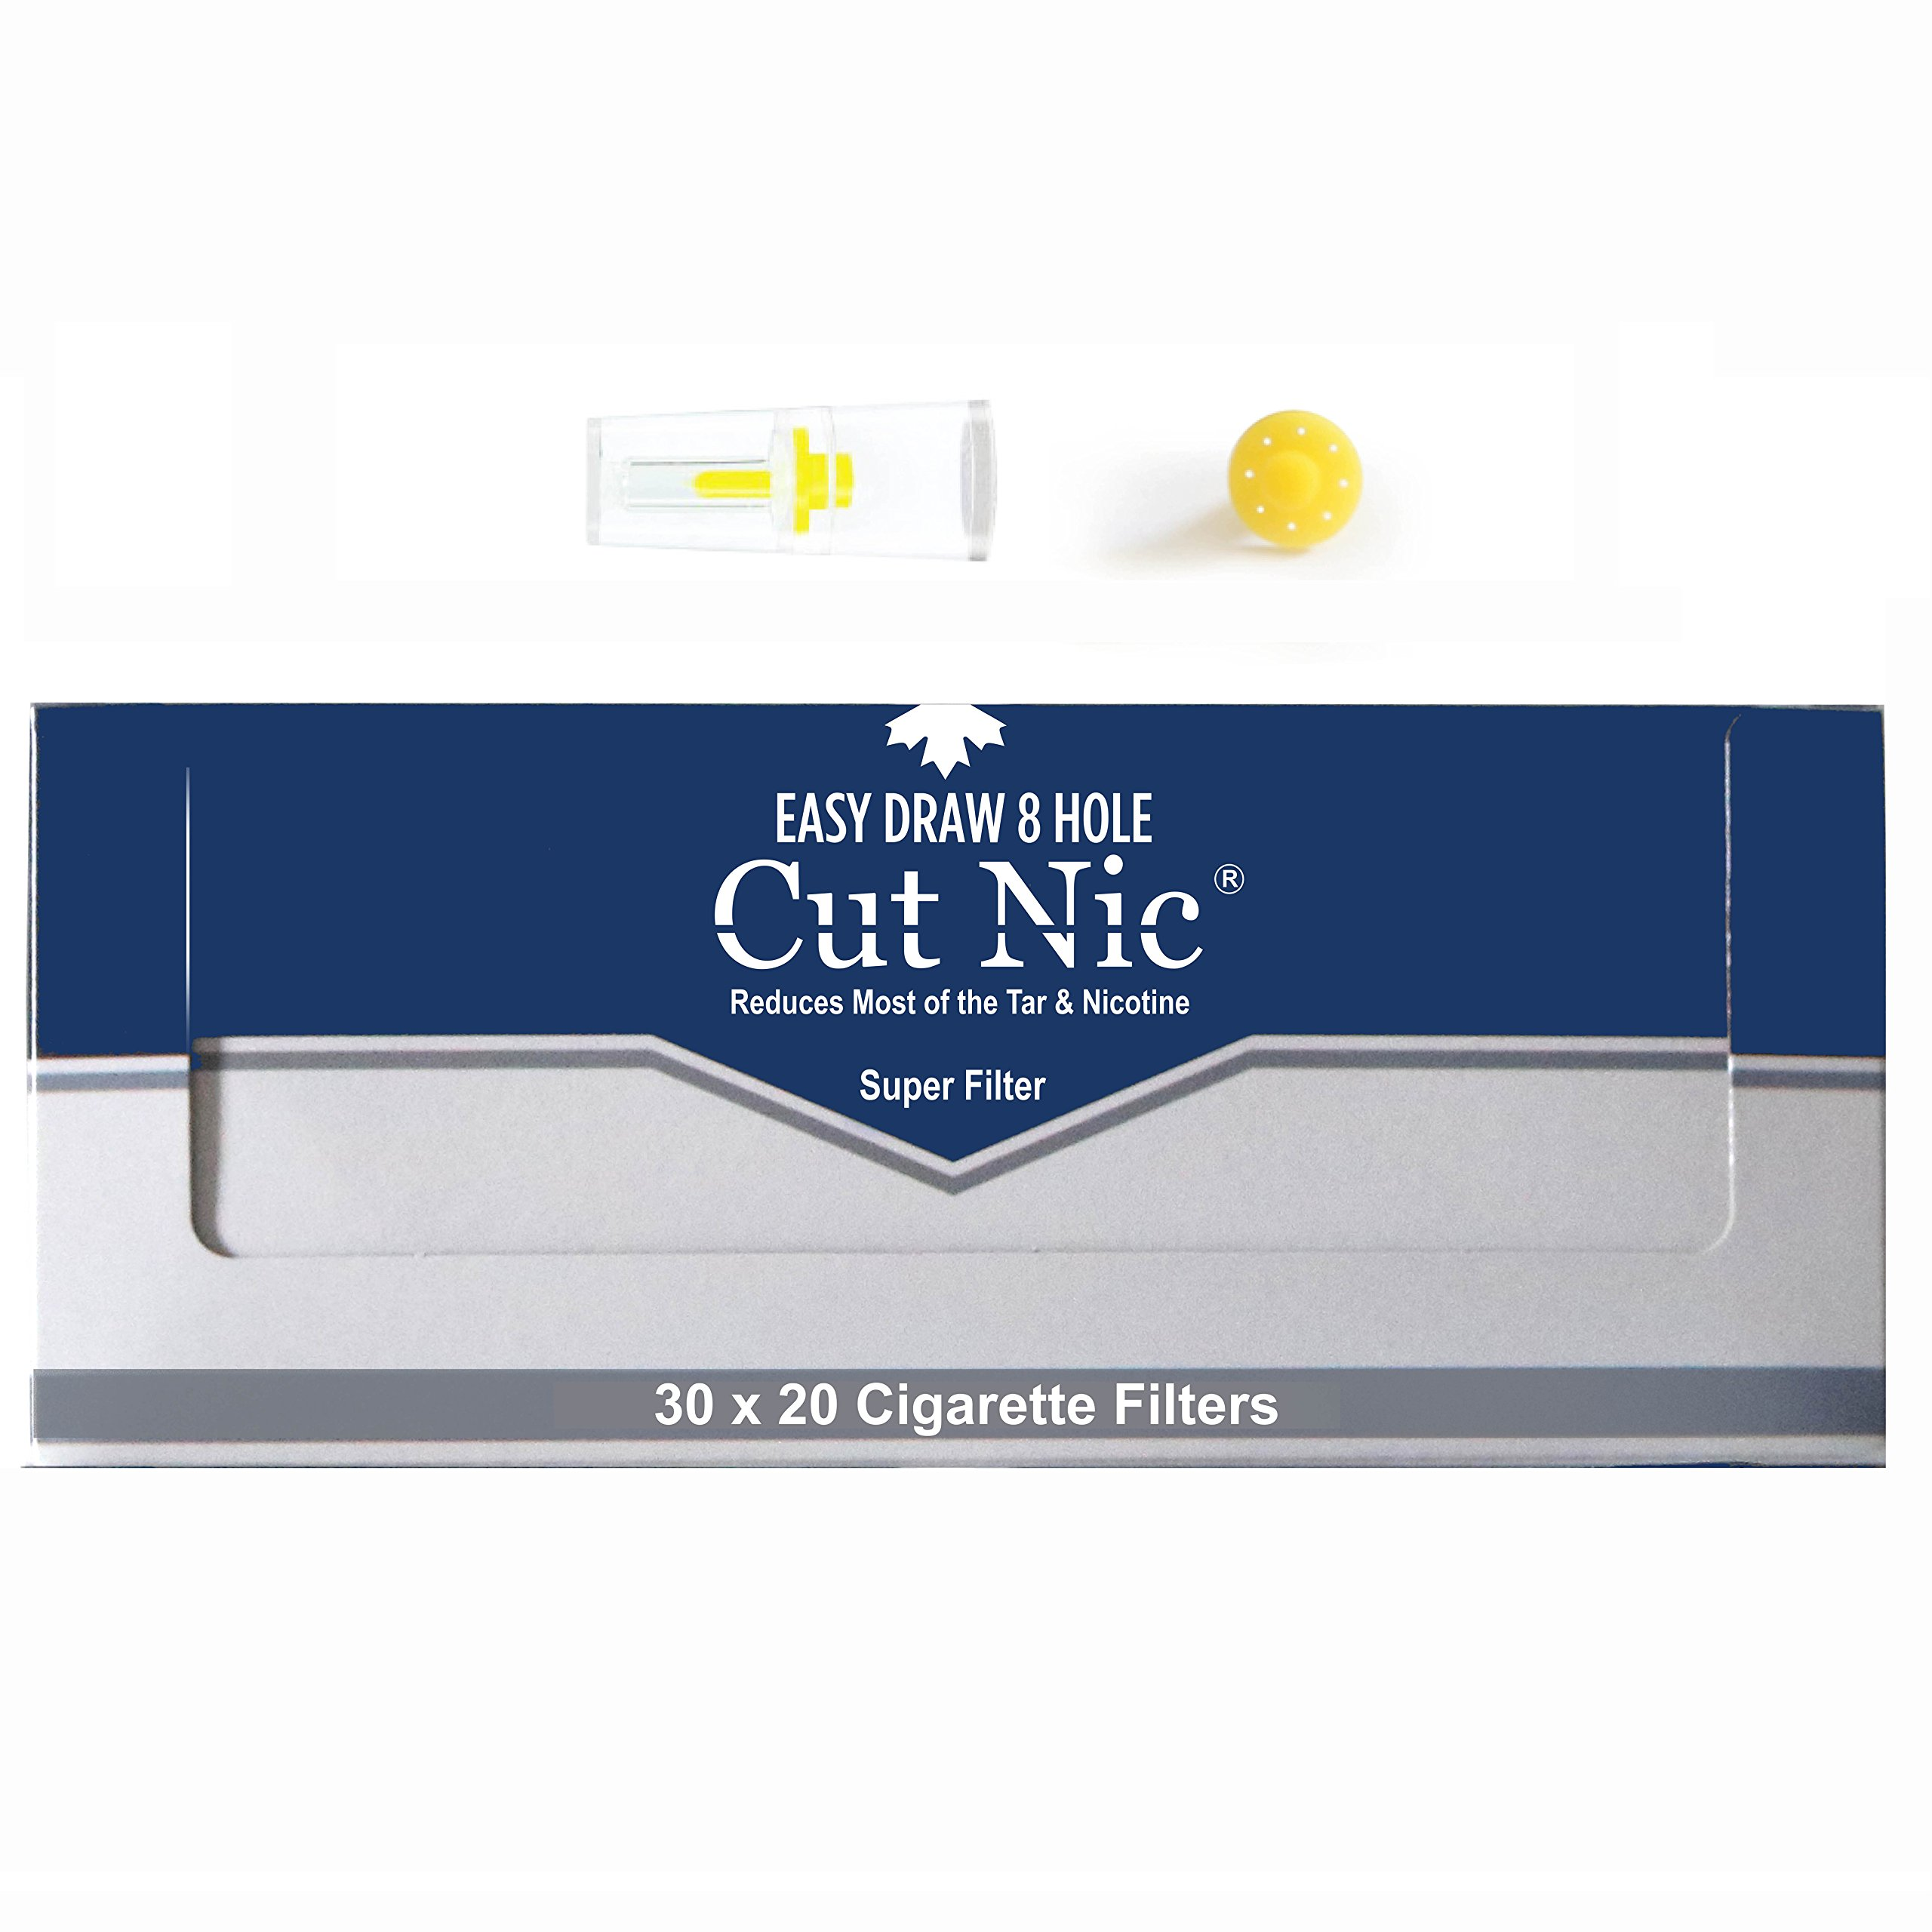 Cut-Nic 8 HOLE EASY DRAW Disposable Cigarette Filters 20 Packs (Total 600 Filters) In Display Box